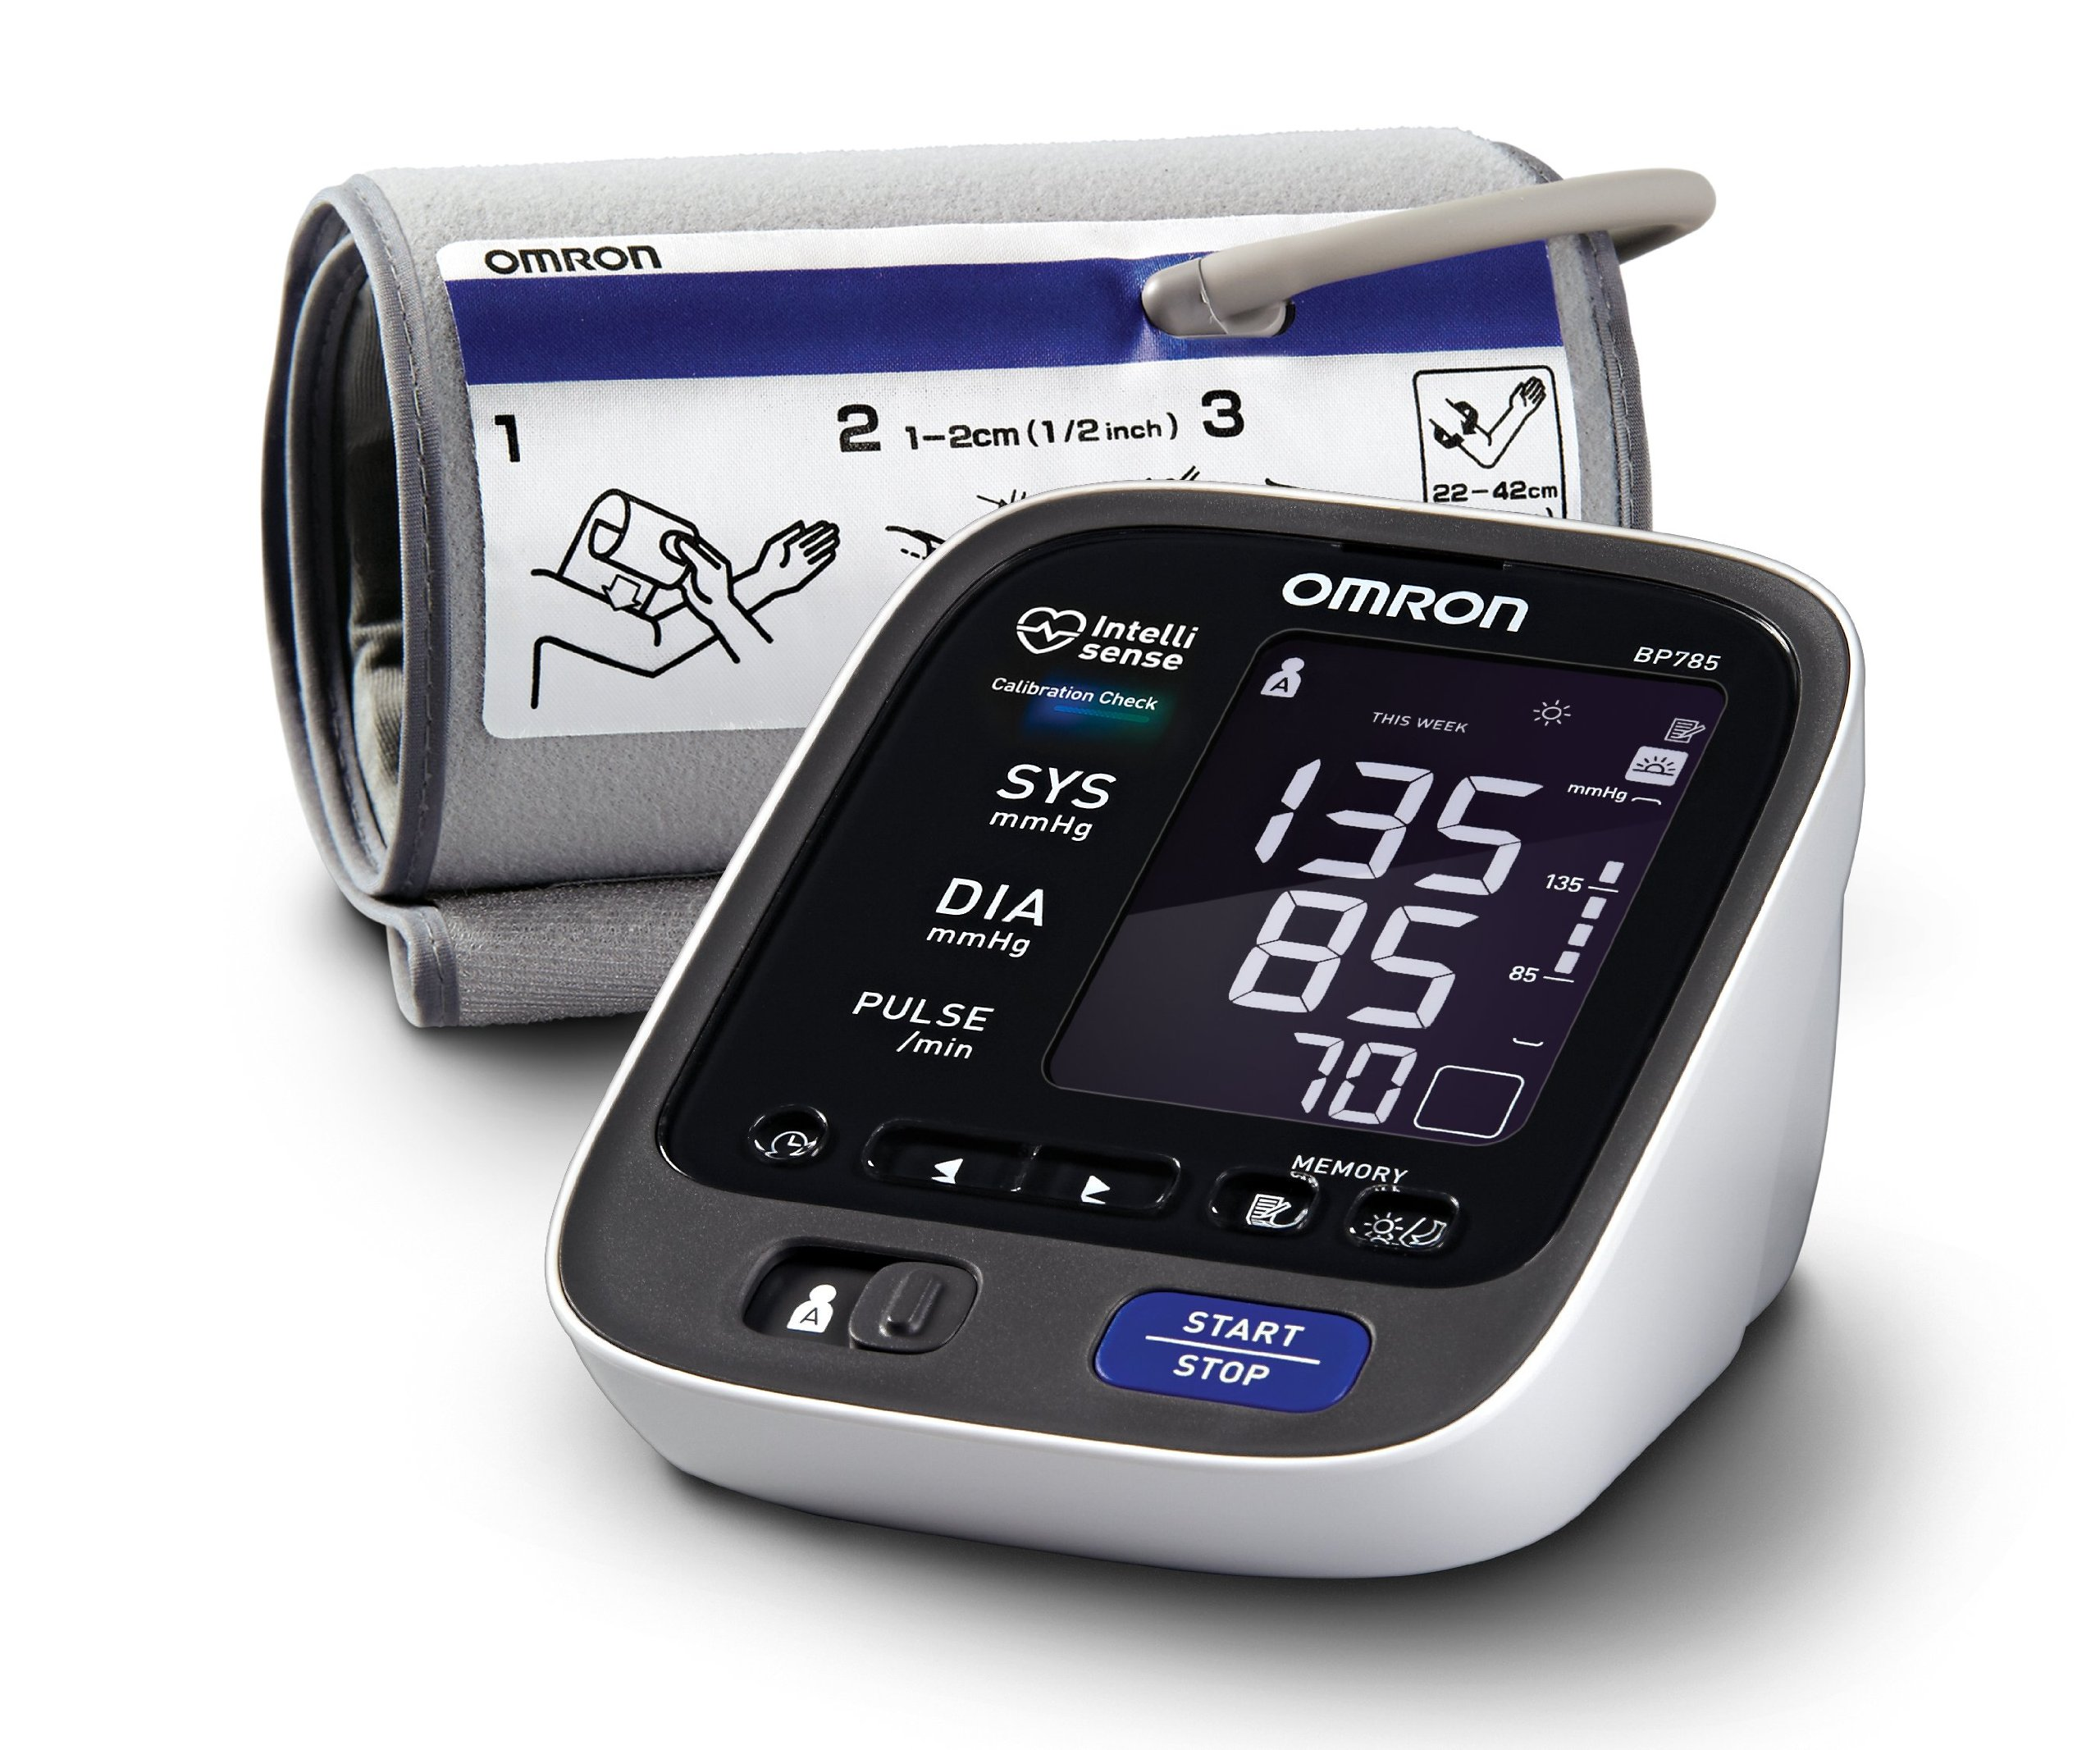 Best Blood Pressure Monitor Reviews – Top 7 Rated for Mar. 2017